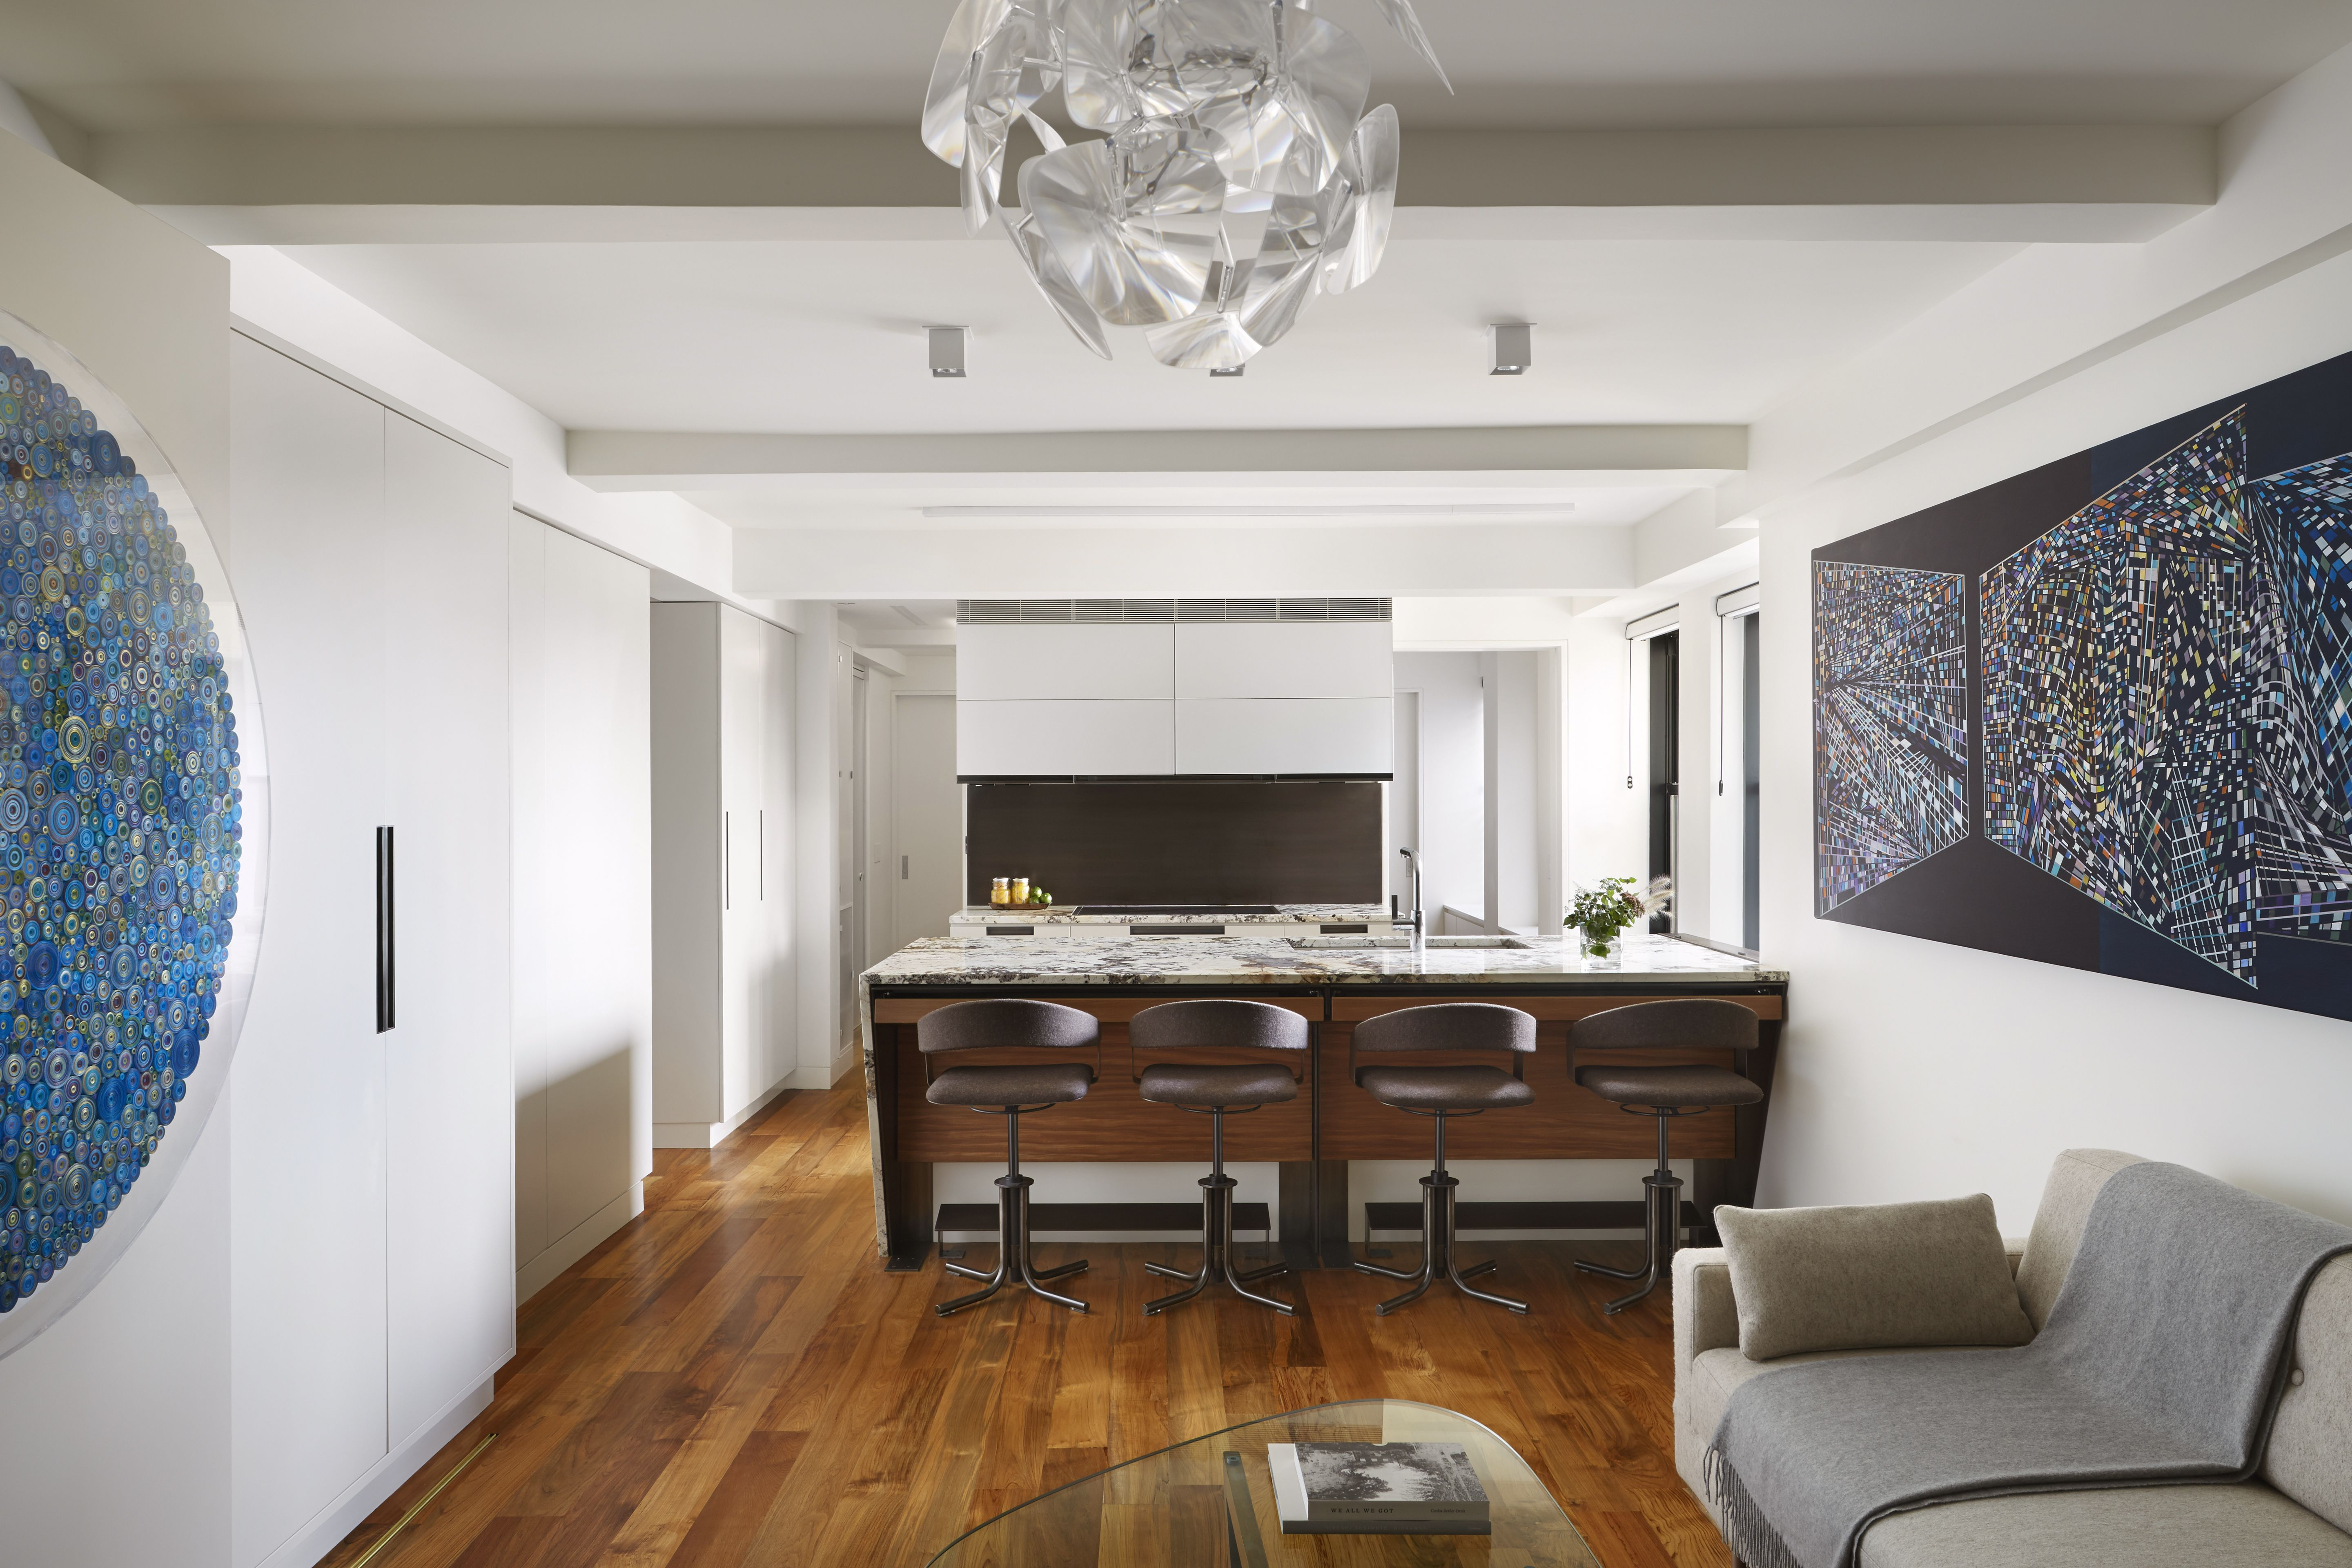 Pin by Balestri Architects on West 23rd NYC - 1 Bedroom ...